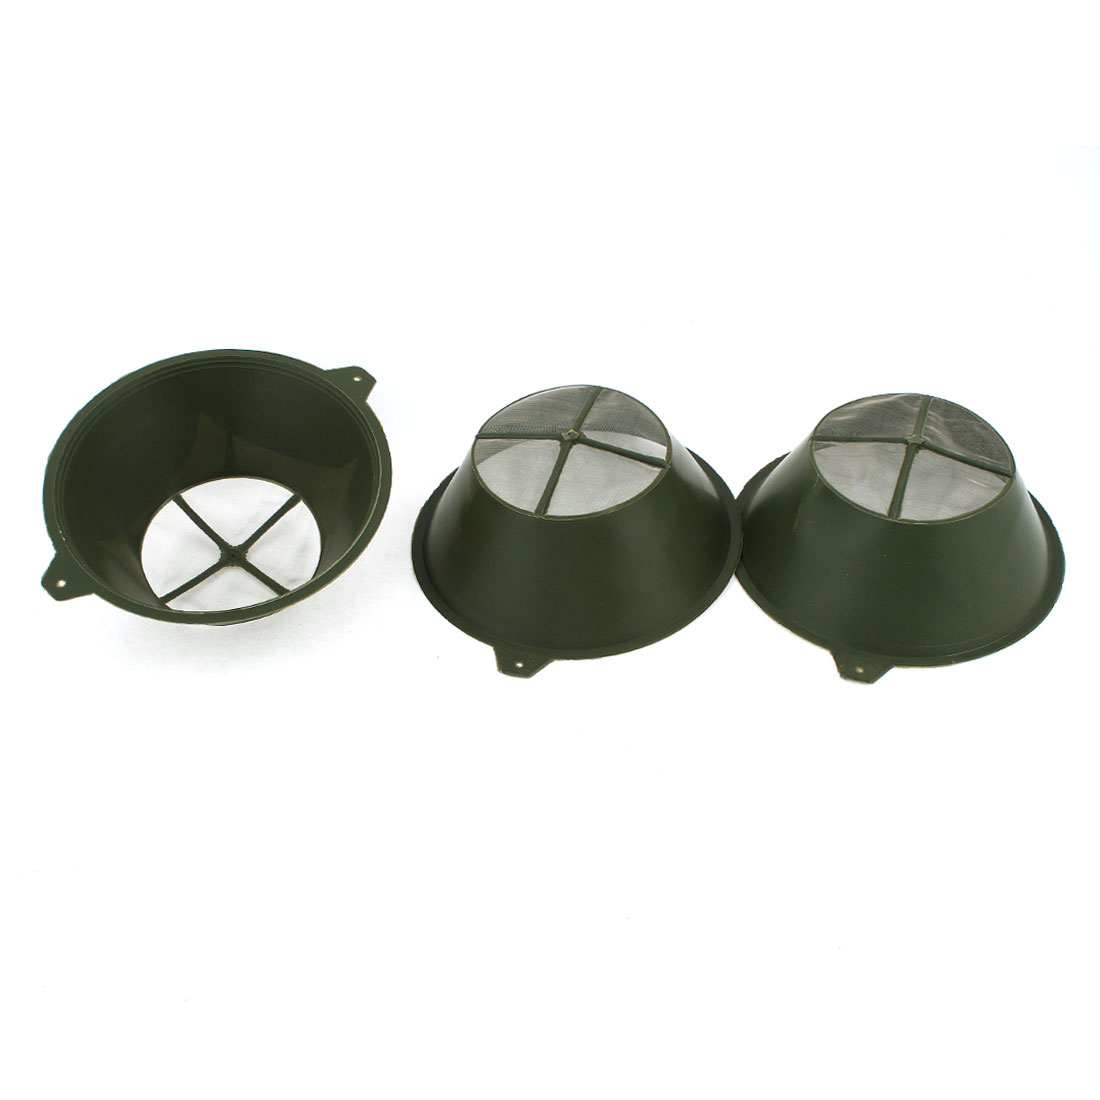 3pcs Industrial Army Green 8cm Dia Nylon Net Plastic Paint Strainers